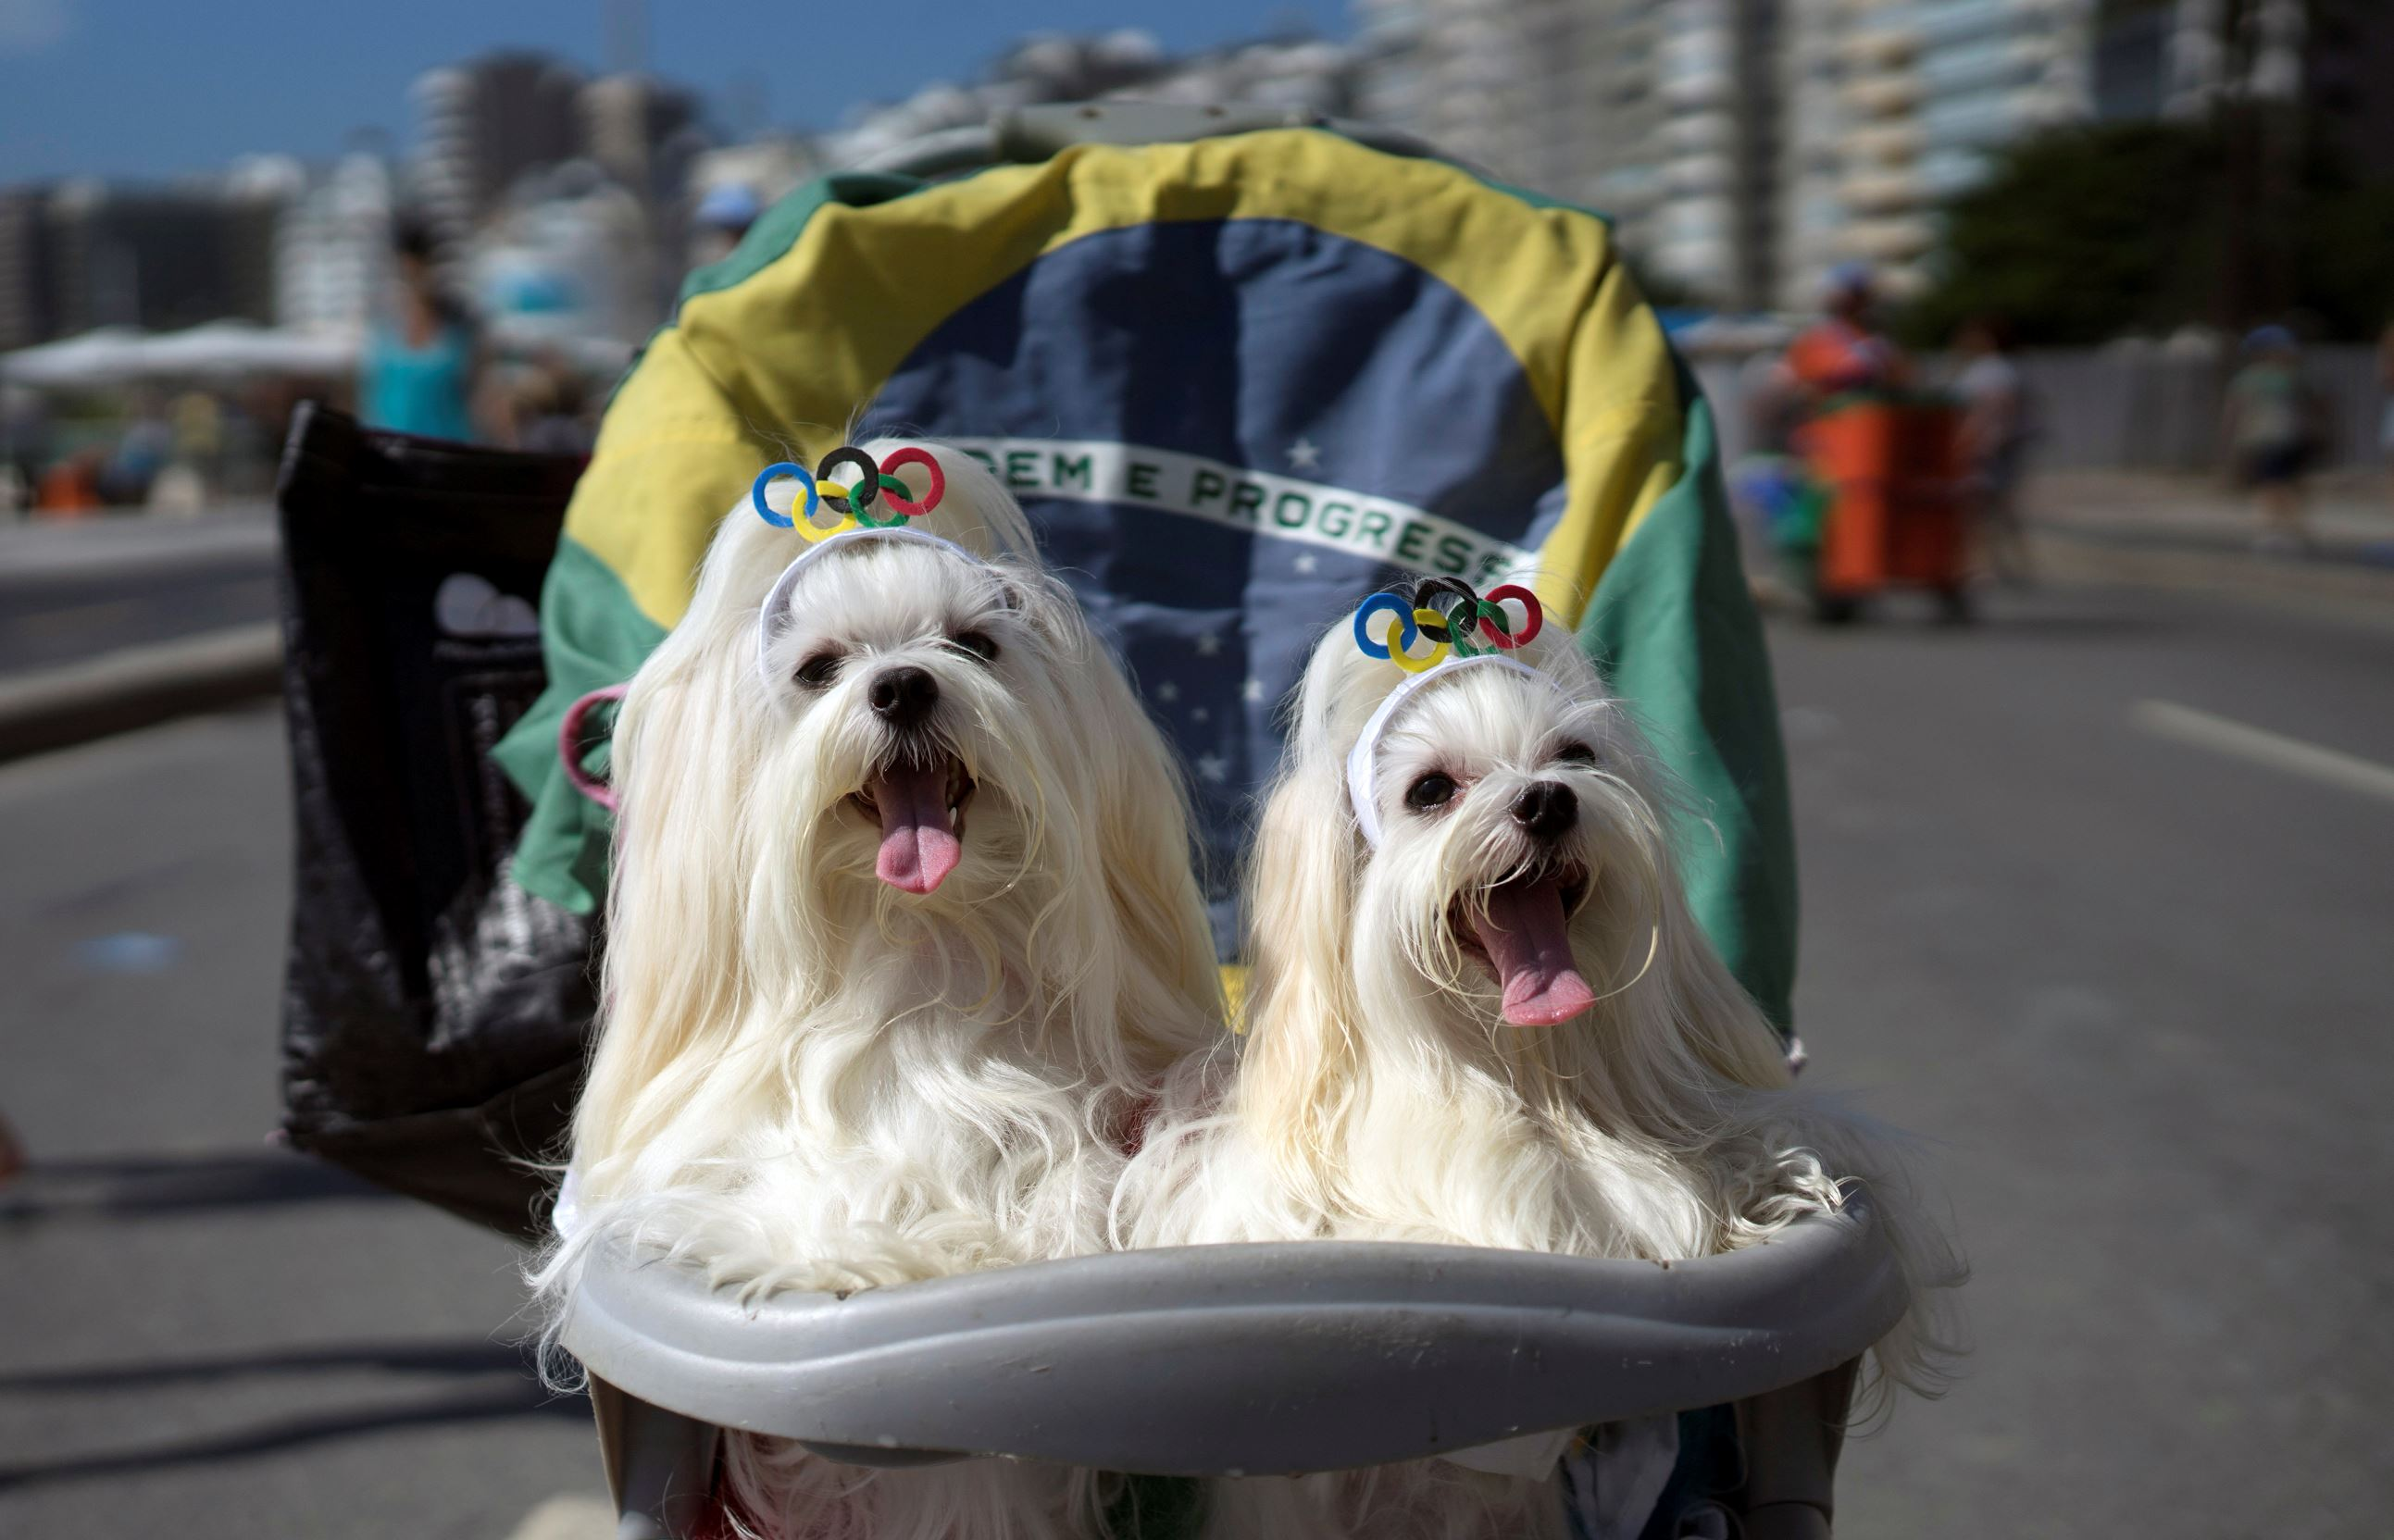 Слайд 56 из 67: Dogs wearing Olympics ring headbands ride in a stroller at a carnival pet parade in Rio de Janeiro, Brazil, Sunday, Jan. 31, 2016. People dressed up their pets in costumes for the annual block parade near Copacabana beach. (AP Photo/Leo Correa)